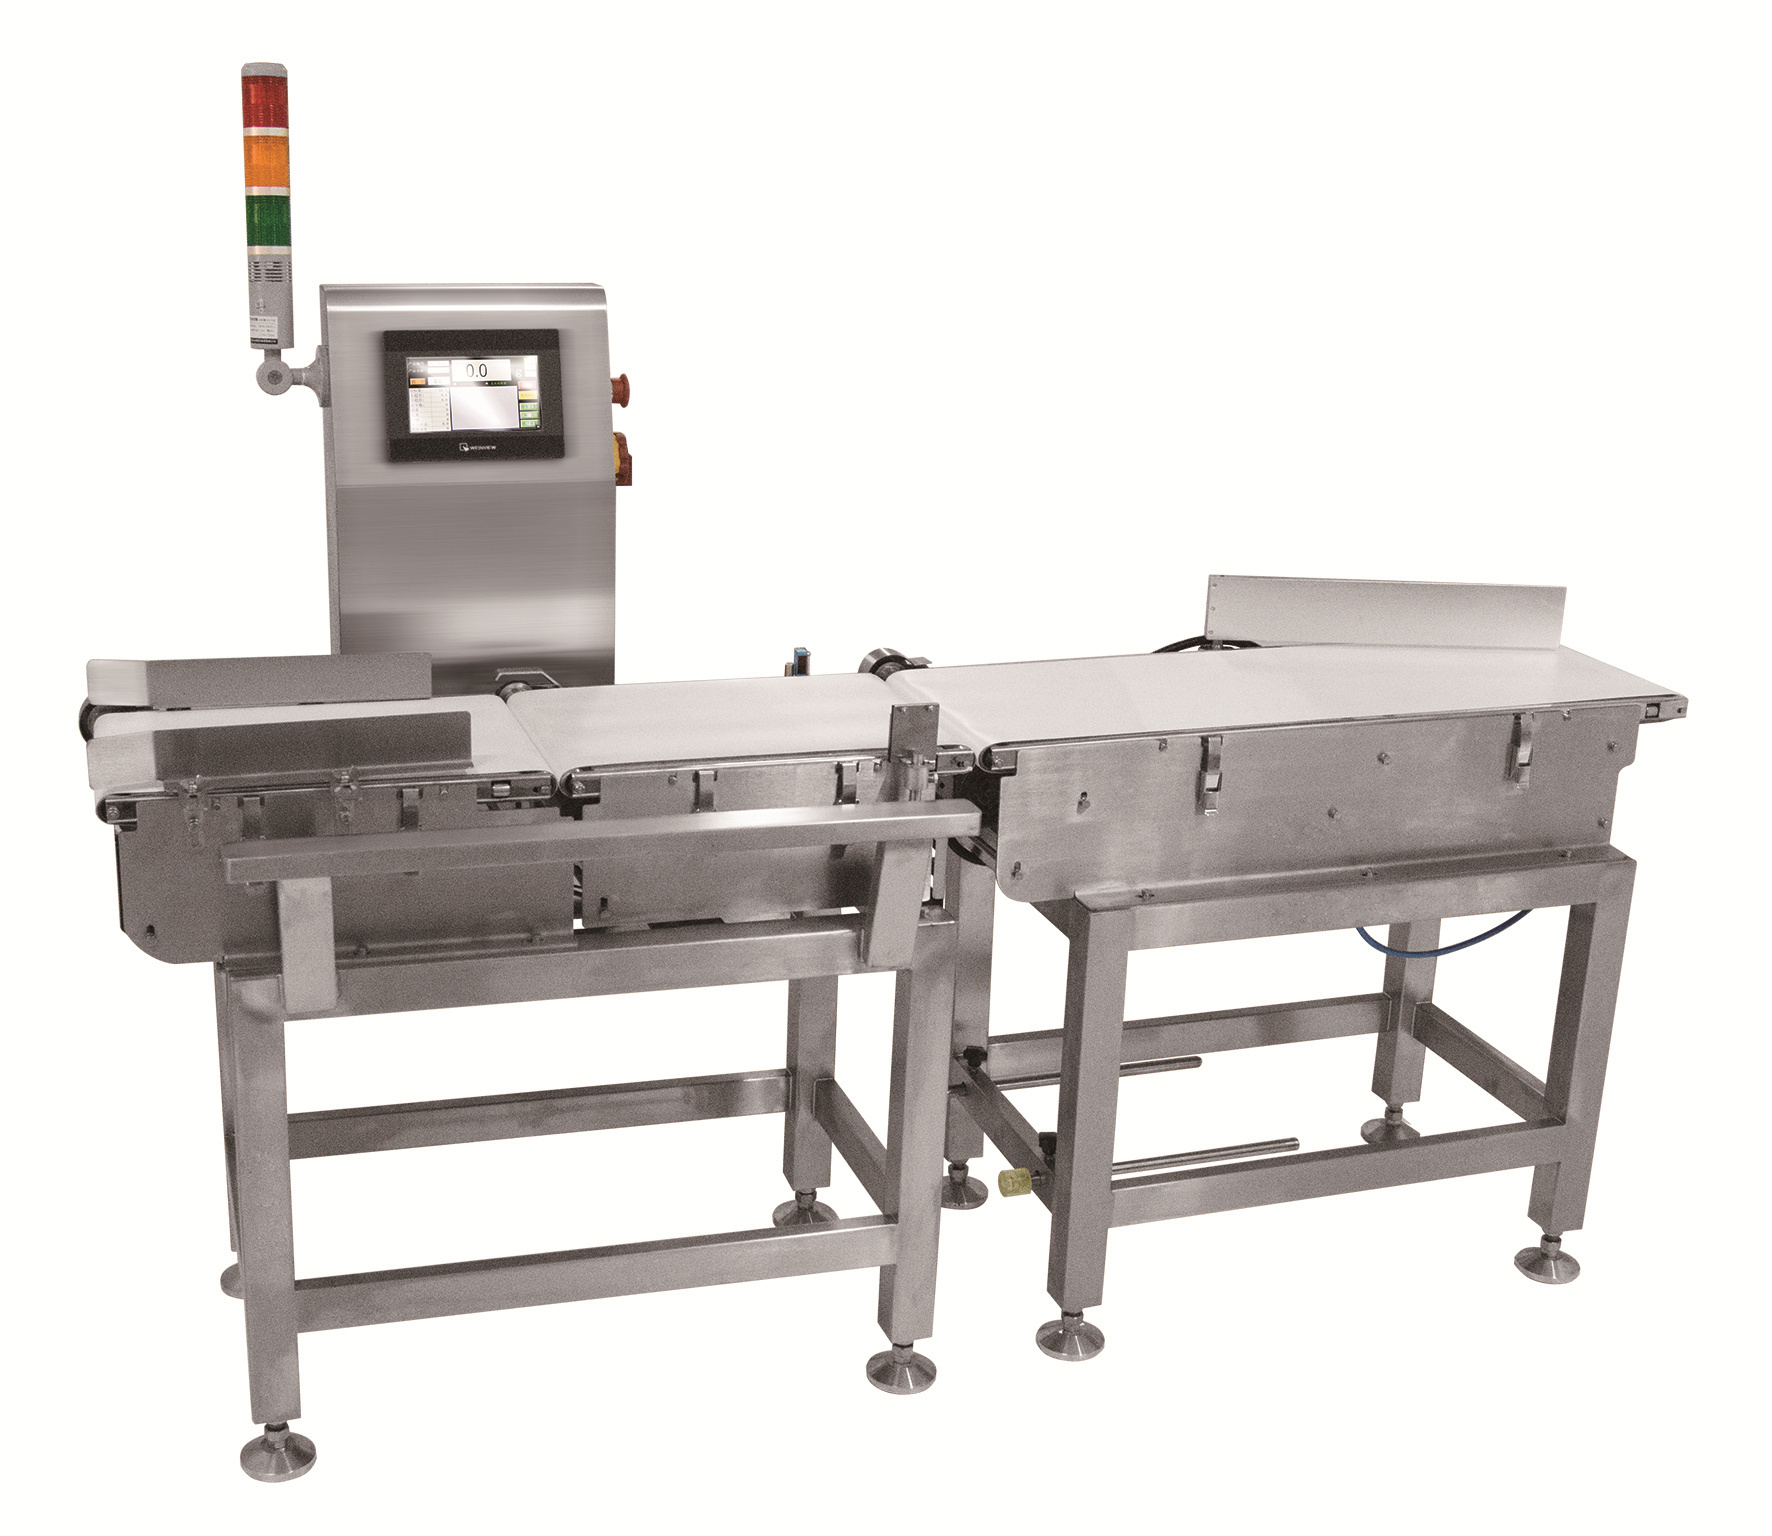 checkweigher,packaging goods for checkweigher,